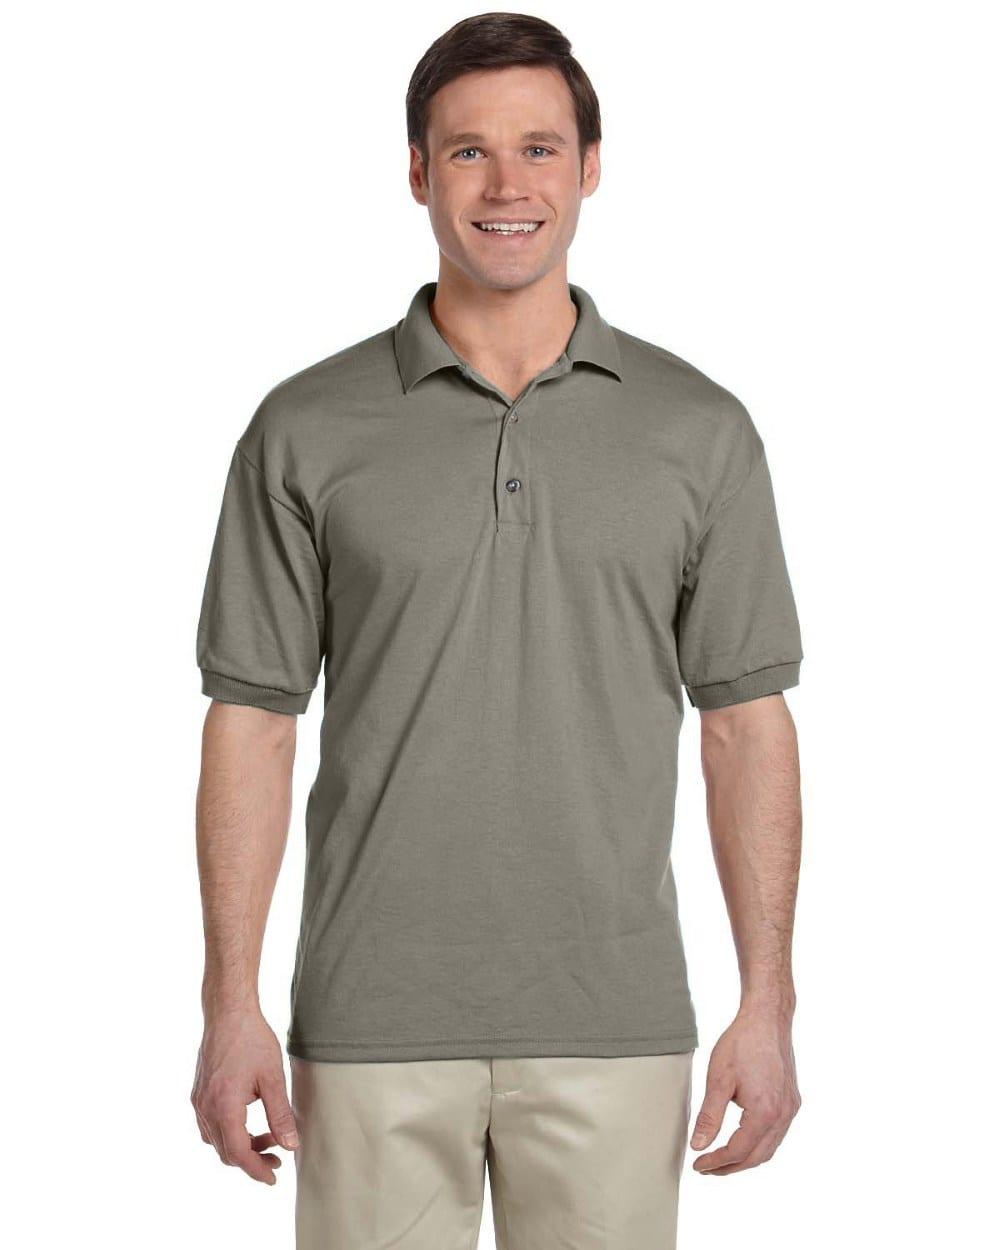 415a1f3e Youth Polo Shirts Wholesale - DREAMWORKS